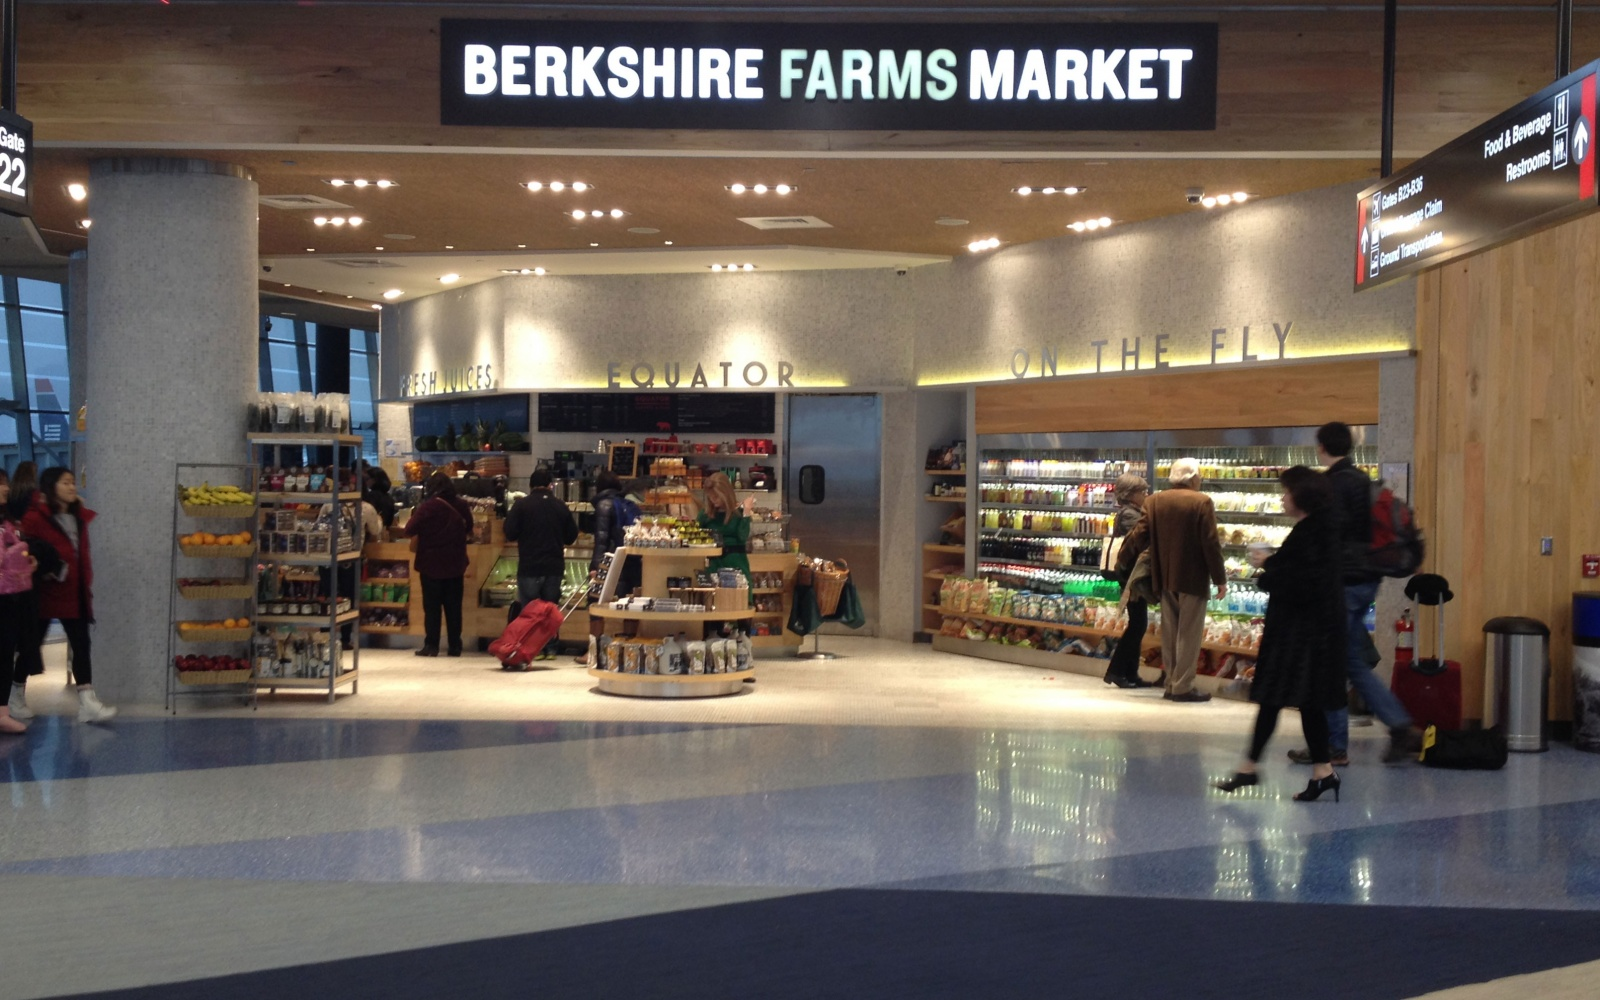 Berkshire Farms Market